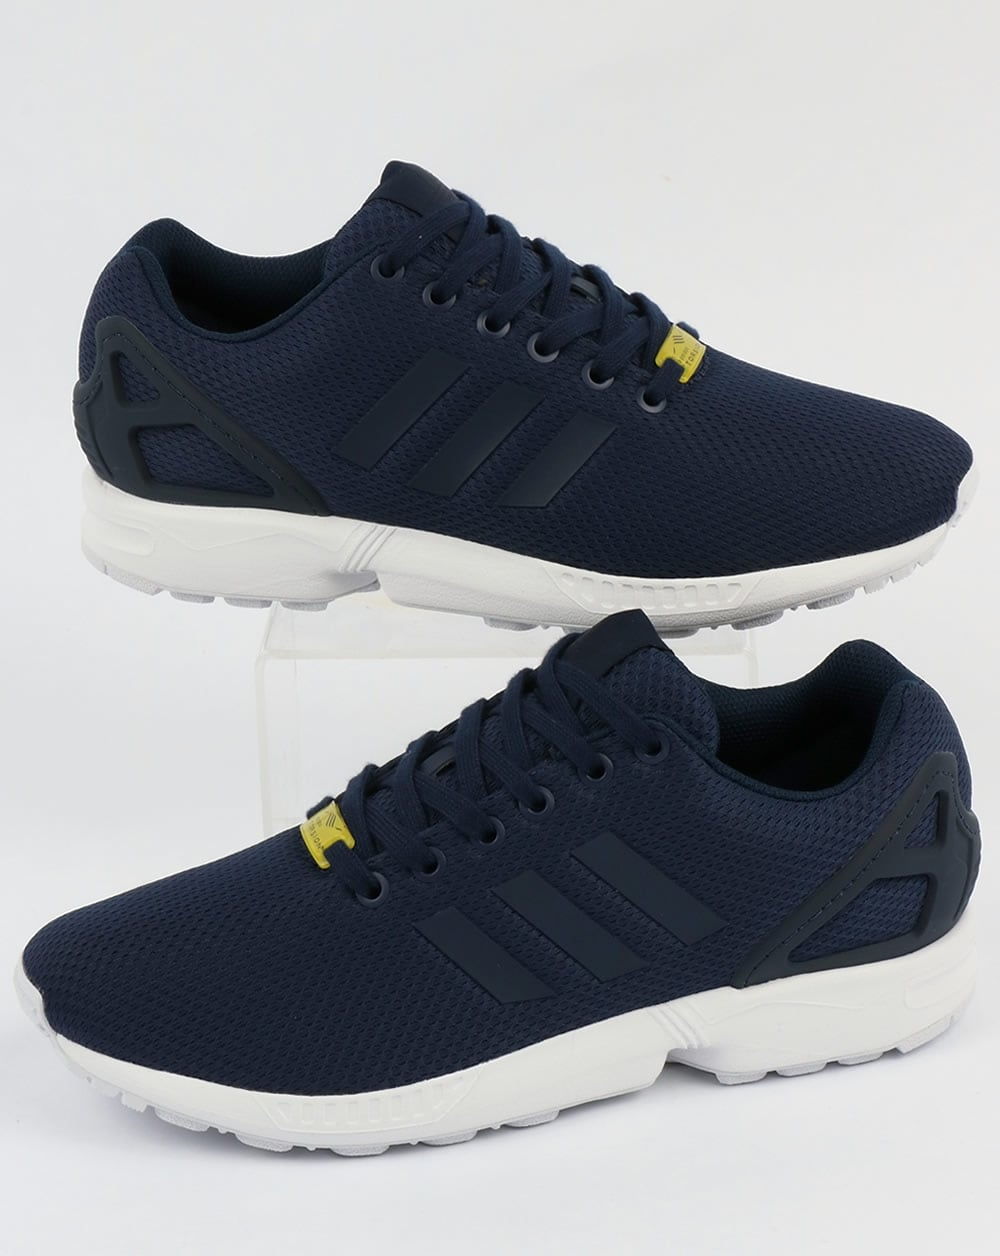 quality design 644c4 c2c3d Adidas ZX Flux Trainers New Navy/White